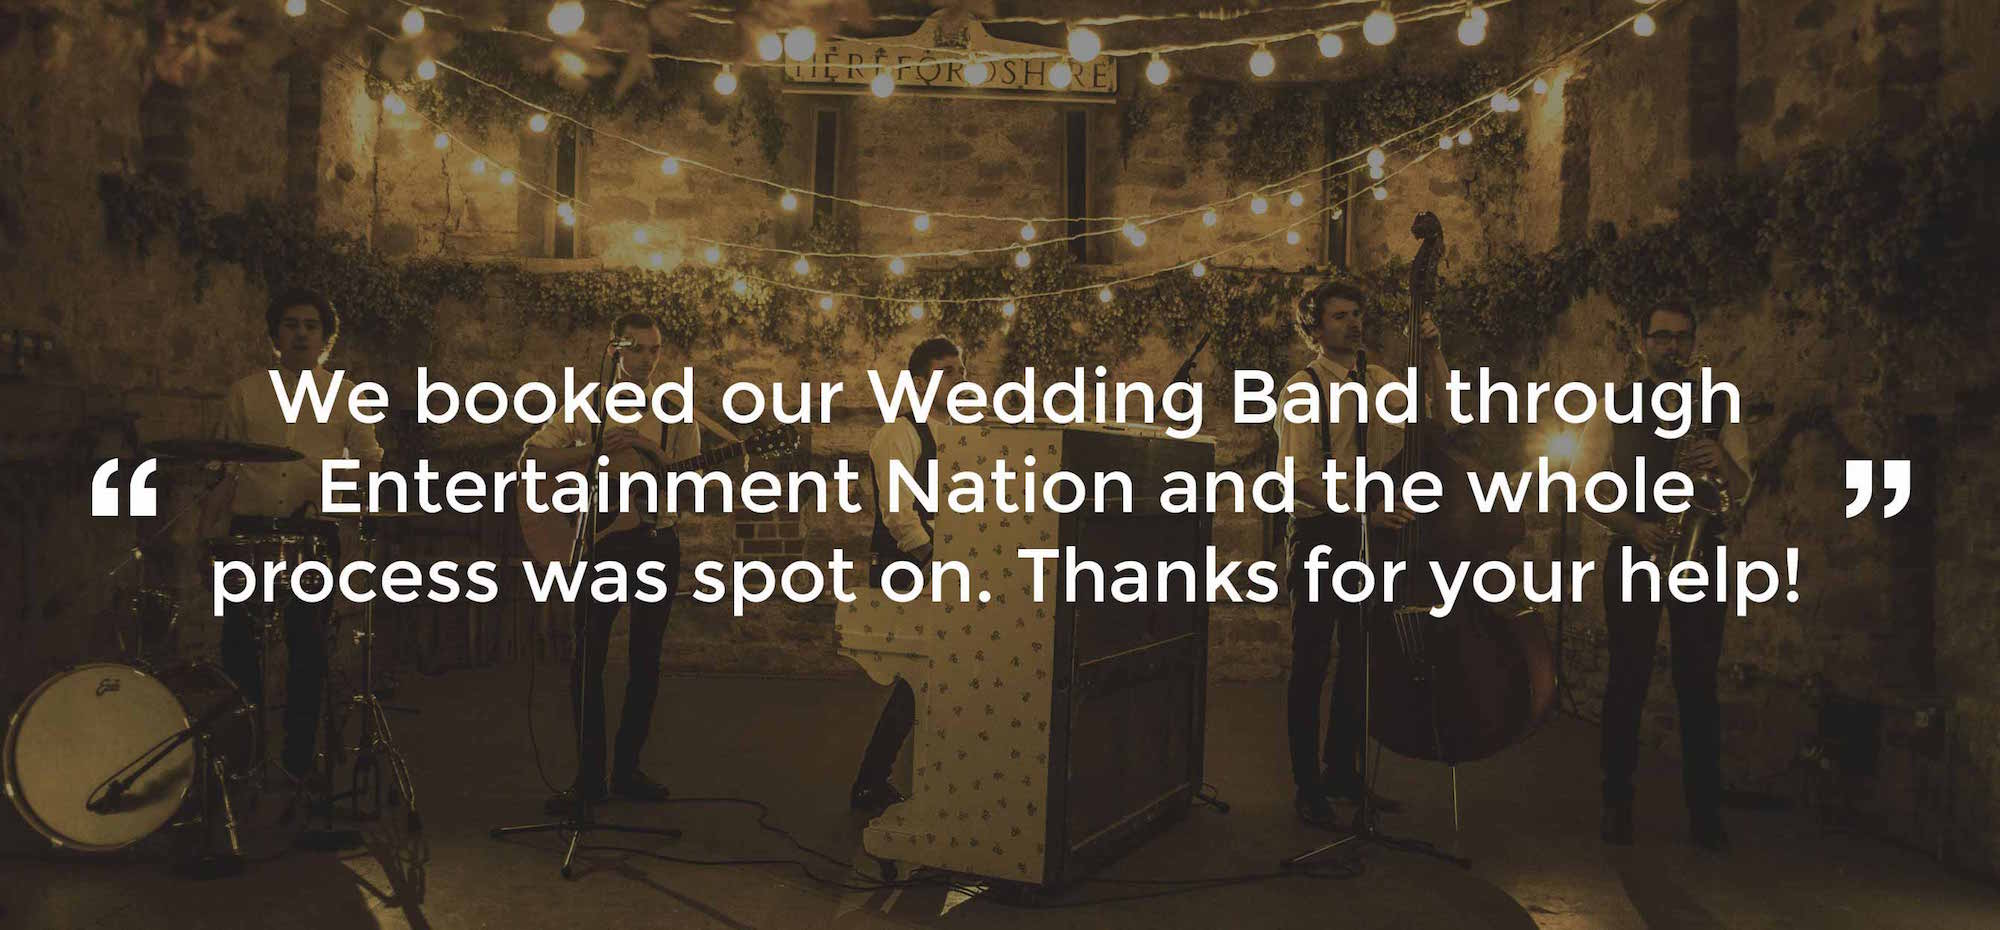 Review of Wedding Band Bristol